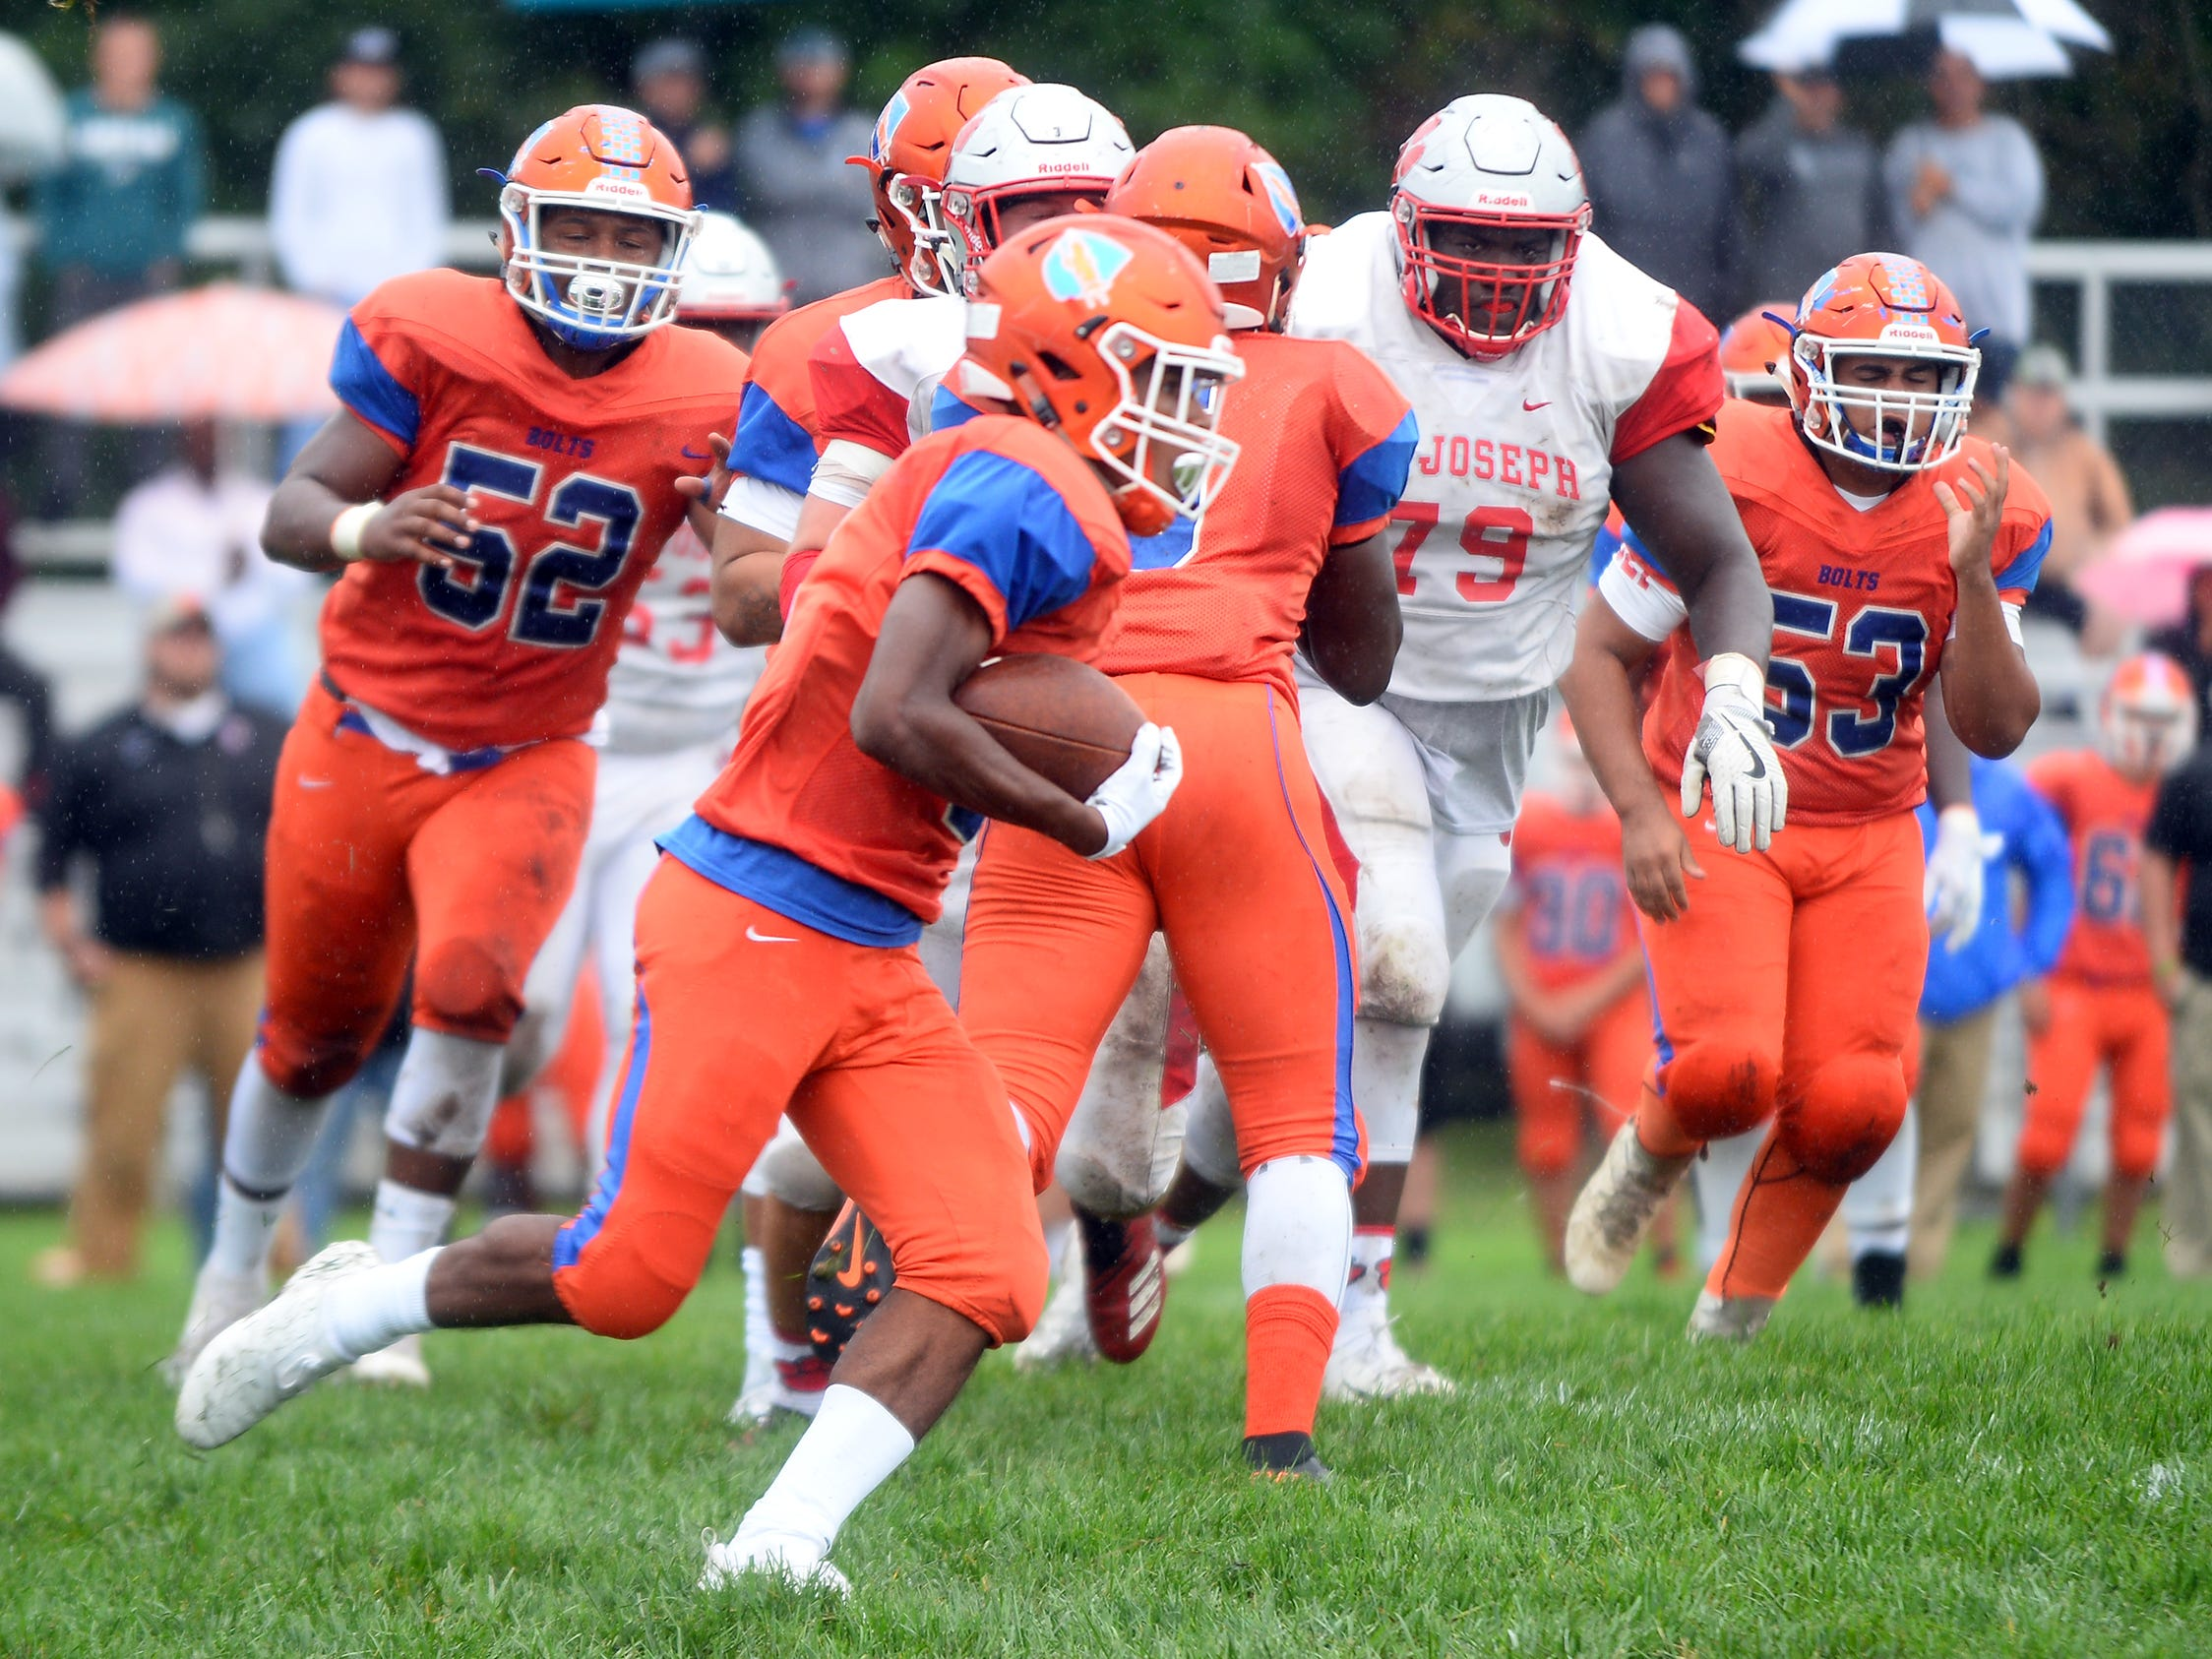 Millville's Cartier Gray (3) runs the ball for a short gain against St. Joseph. The visiting Thunderbolts lost the outing to the Wildcats in Hammonton on Saturday, September 8.